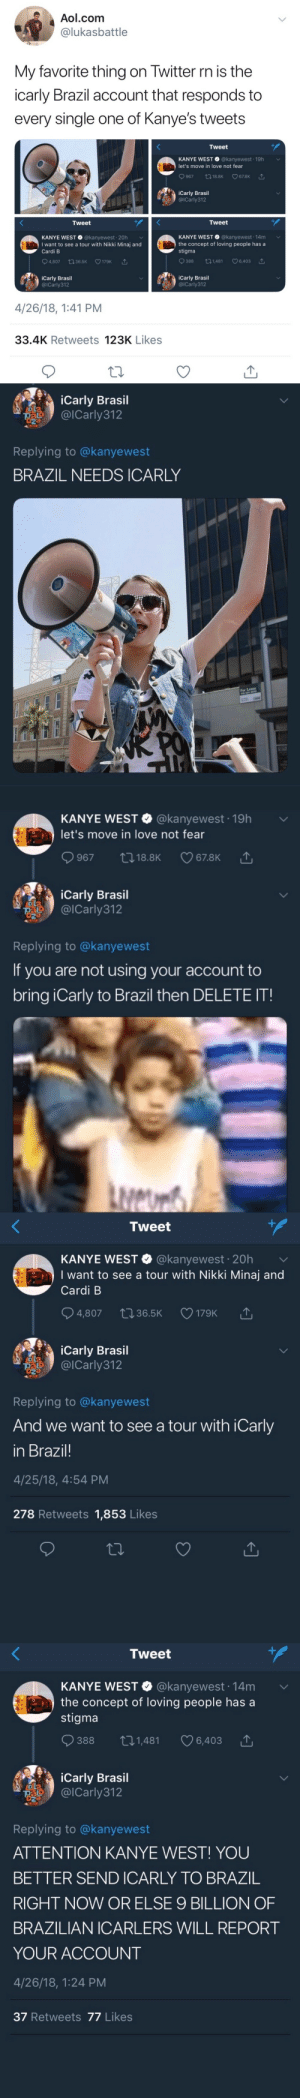 Brazill: Aol.com  lukasbattle  My favorite thing on Iwitter rn is the  icarly Brazil account that responds to  every single one of Kanye's tweets  Tweet  KANYE WEST @kanyewest 19h  let's move in love not fear  9967 18.8K CO 67.8K △  iCarly Brasil  @ICarly312  Tweet  Tweet  KANYE WEST @kanyewest 20h  I want to see a tour with Nikki Minaj and  Cardi B  KANYE WEST @kanyewest 14m  the concept of loving people hasa  stigma  04,807 ロ36.5K V179K  388 t01,481 6,403  iCarly Brasil  @ICarly312  iCarly Brasil  @lCarly312  4/26/18, 1:41 PM  33.4K Retweets 123K Likes   iCarly Brasil  麗 ▽)' @ICarly31 2  Replying to @kanyewest  BRAZIL NEEDS ICARLY  alo   KANYE WEST @kanyewest 19h  let's move in love not fear  iCarly Brasil  @lCarly312  Replying to @kanyewest  If you are not using your account to  bring iCarly to Brazil then DELETE IT!   Tweet  KANYE wEST·@kanyewest. 20h ﹀  I want to see a tour with Nikki Minaj and  Cardi B  4,807 t036.5K 179K  '↑  iCarly Brasil  , @lCarly312  Replying to @kanyewest  And we want to see a tour with iCarly  in Brazil!  4/25/18, 4:54 PM  278 Retweets 1,853 Likes   Tweet  KANYE WEST @kanyewest. 14m  the concept of loving people has a  stigma  ﹀  388 ロ1,481 C 6,403  DLa  023  iCarly Brasil  이Carly312  Replying to @kanyewest  ATTENTION KANYE WEST! YOU  BETTER SEND ICARLY TO BRAZ1L  RIGHT NOW OR ELSE 9 BILLION OF  BRAZILIAN ICARLERS WILL REPORT  YOUR ACCOUNT  4/26/18, 1:24 PM  37 Retweets 77 Likes